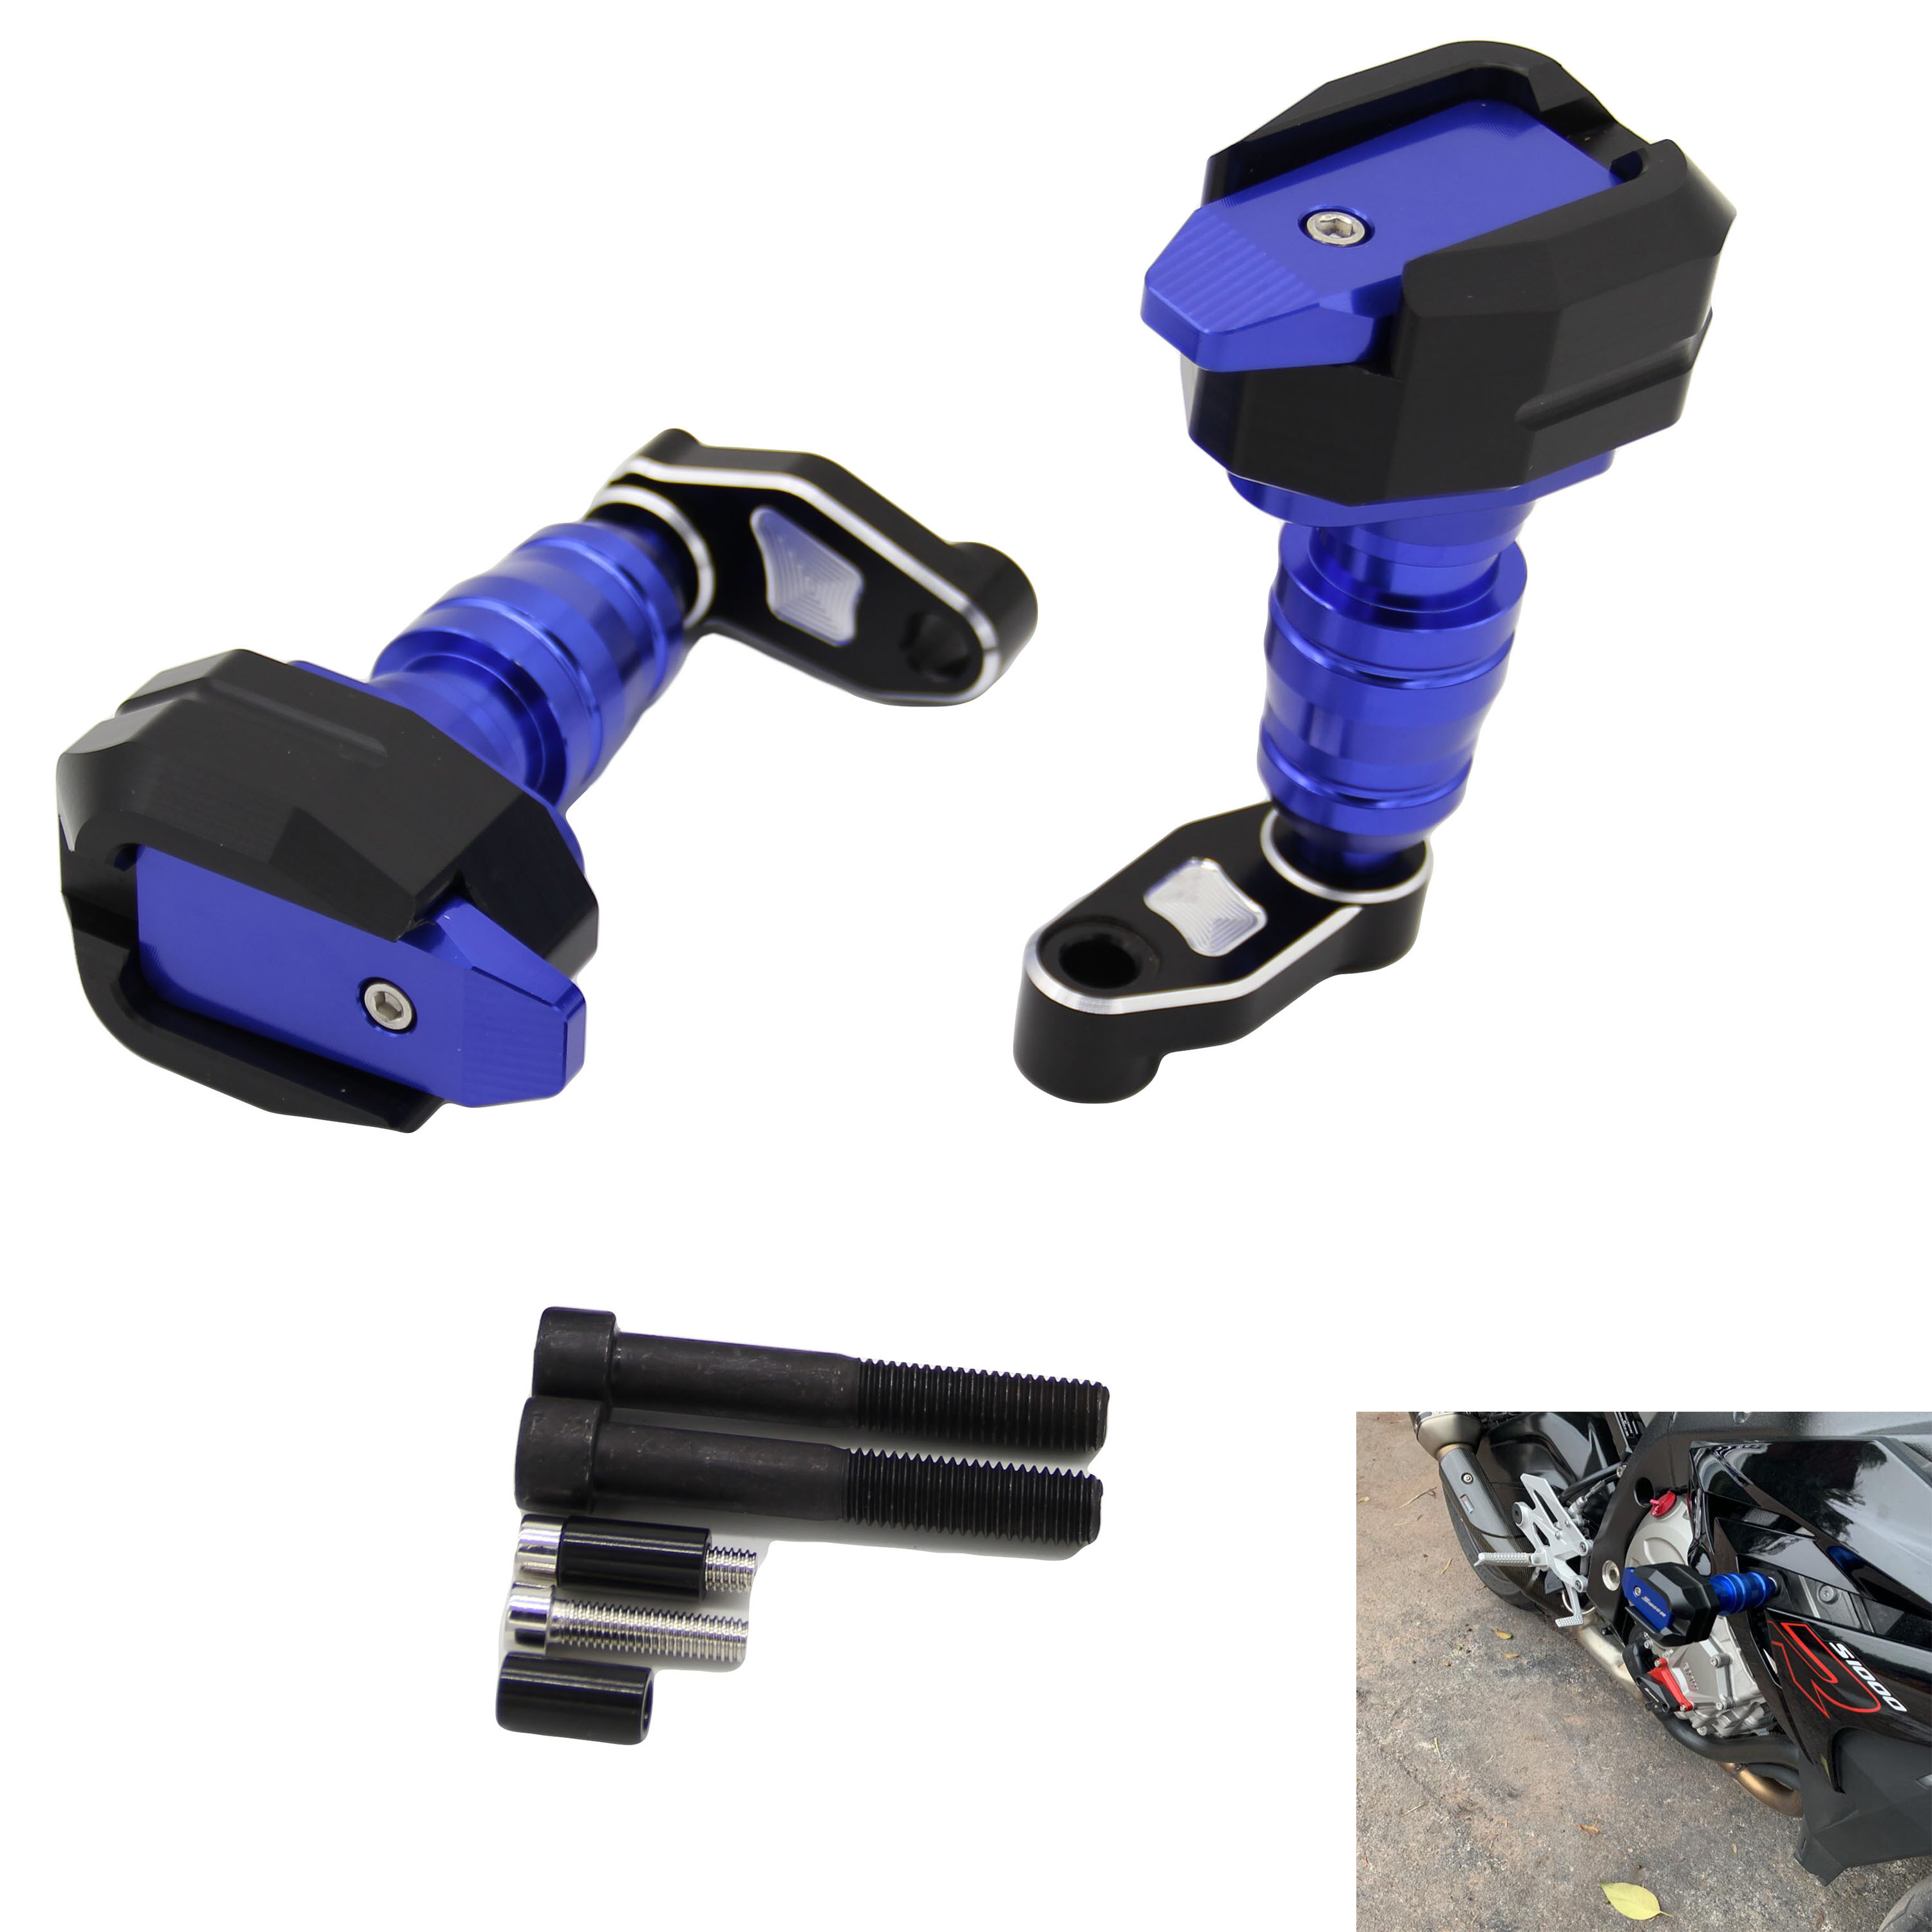 For BMW S1000RR <font><b>S1000XR</b></font> S 1000RR 2010 11 2012-2018 Motorcycle Falling Protection Frame Slider Fairing Guard Crash <font><b>Pad</b></font> Protector image